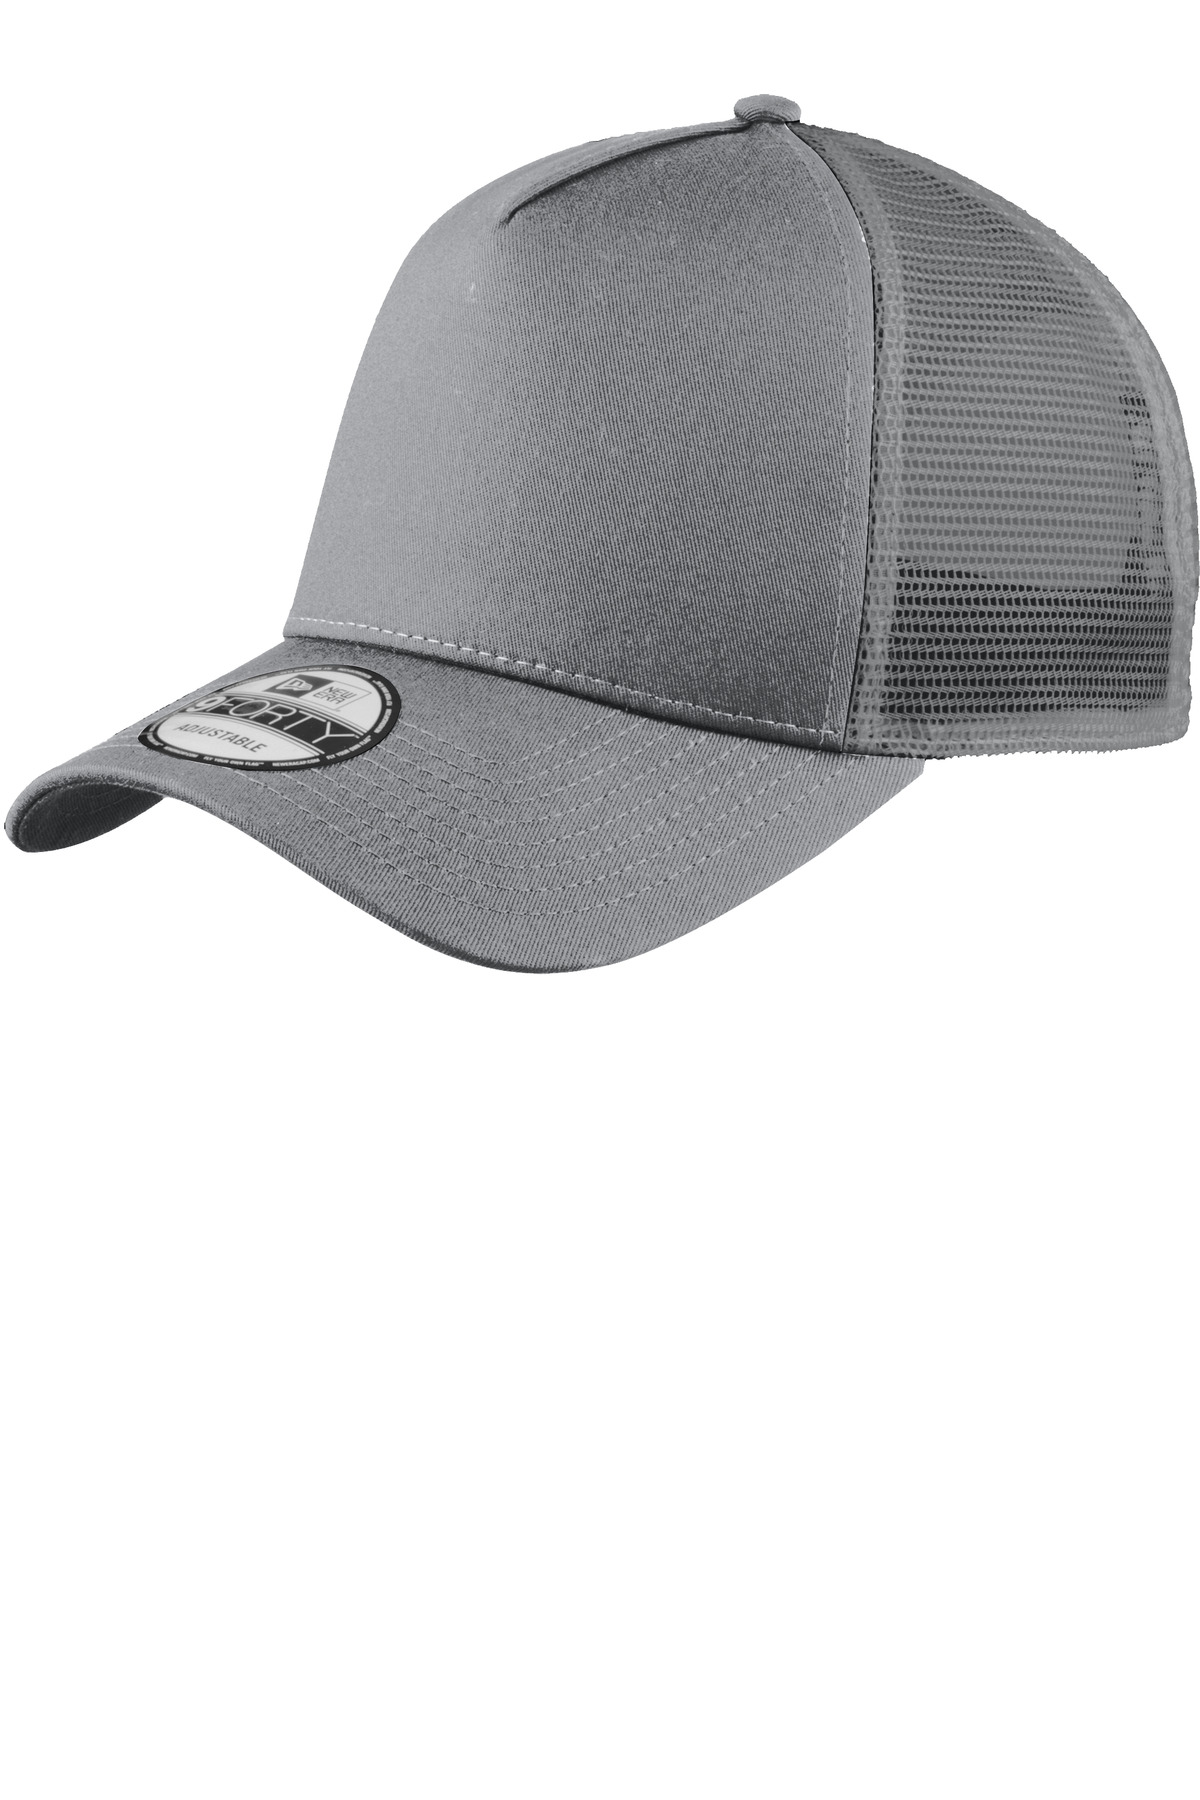 New Era ®  Snapback Trucker Cap. NE205 - Grey/ Grey